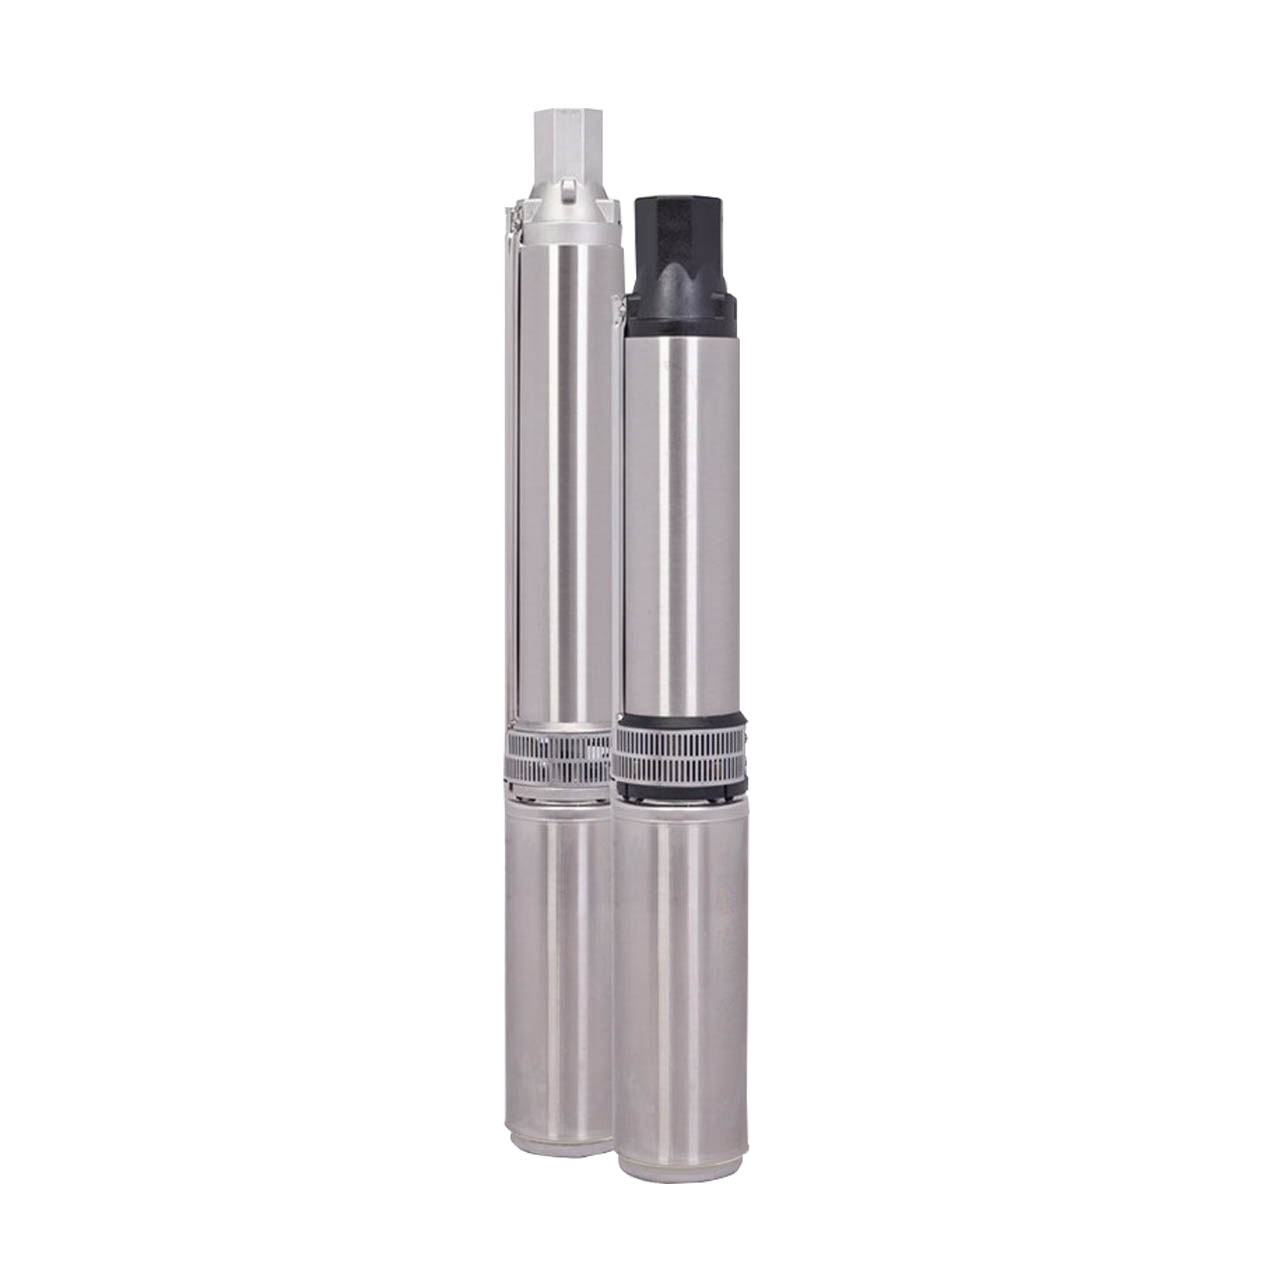 hight resolution of franklin electric franklin electric 3200 series 10frd05s4 2w115 submersible pump 10 gpm 0 5 hp 115v 1ph 2 wire fec96311005